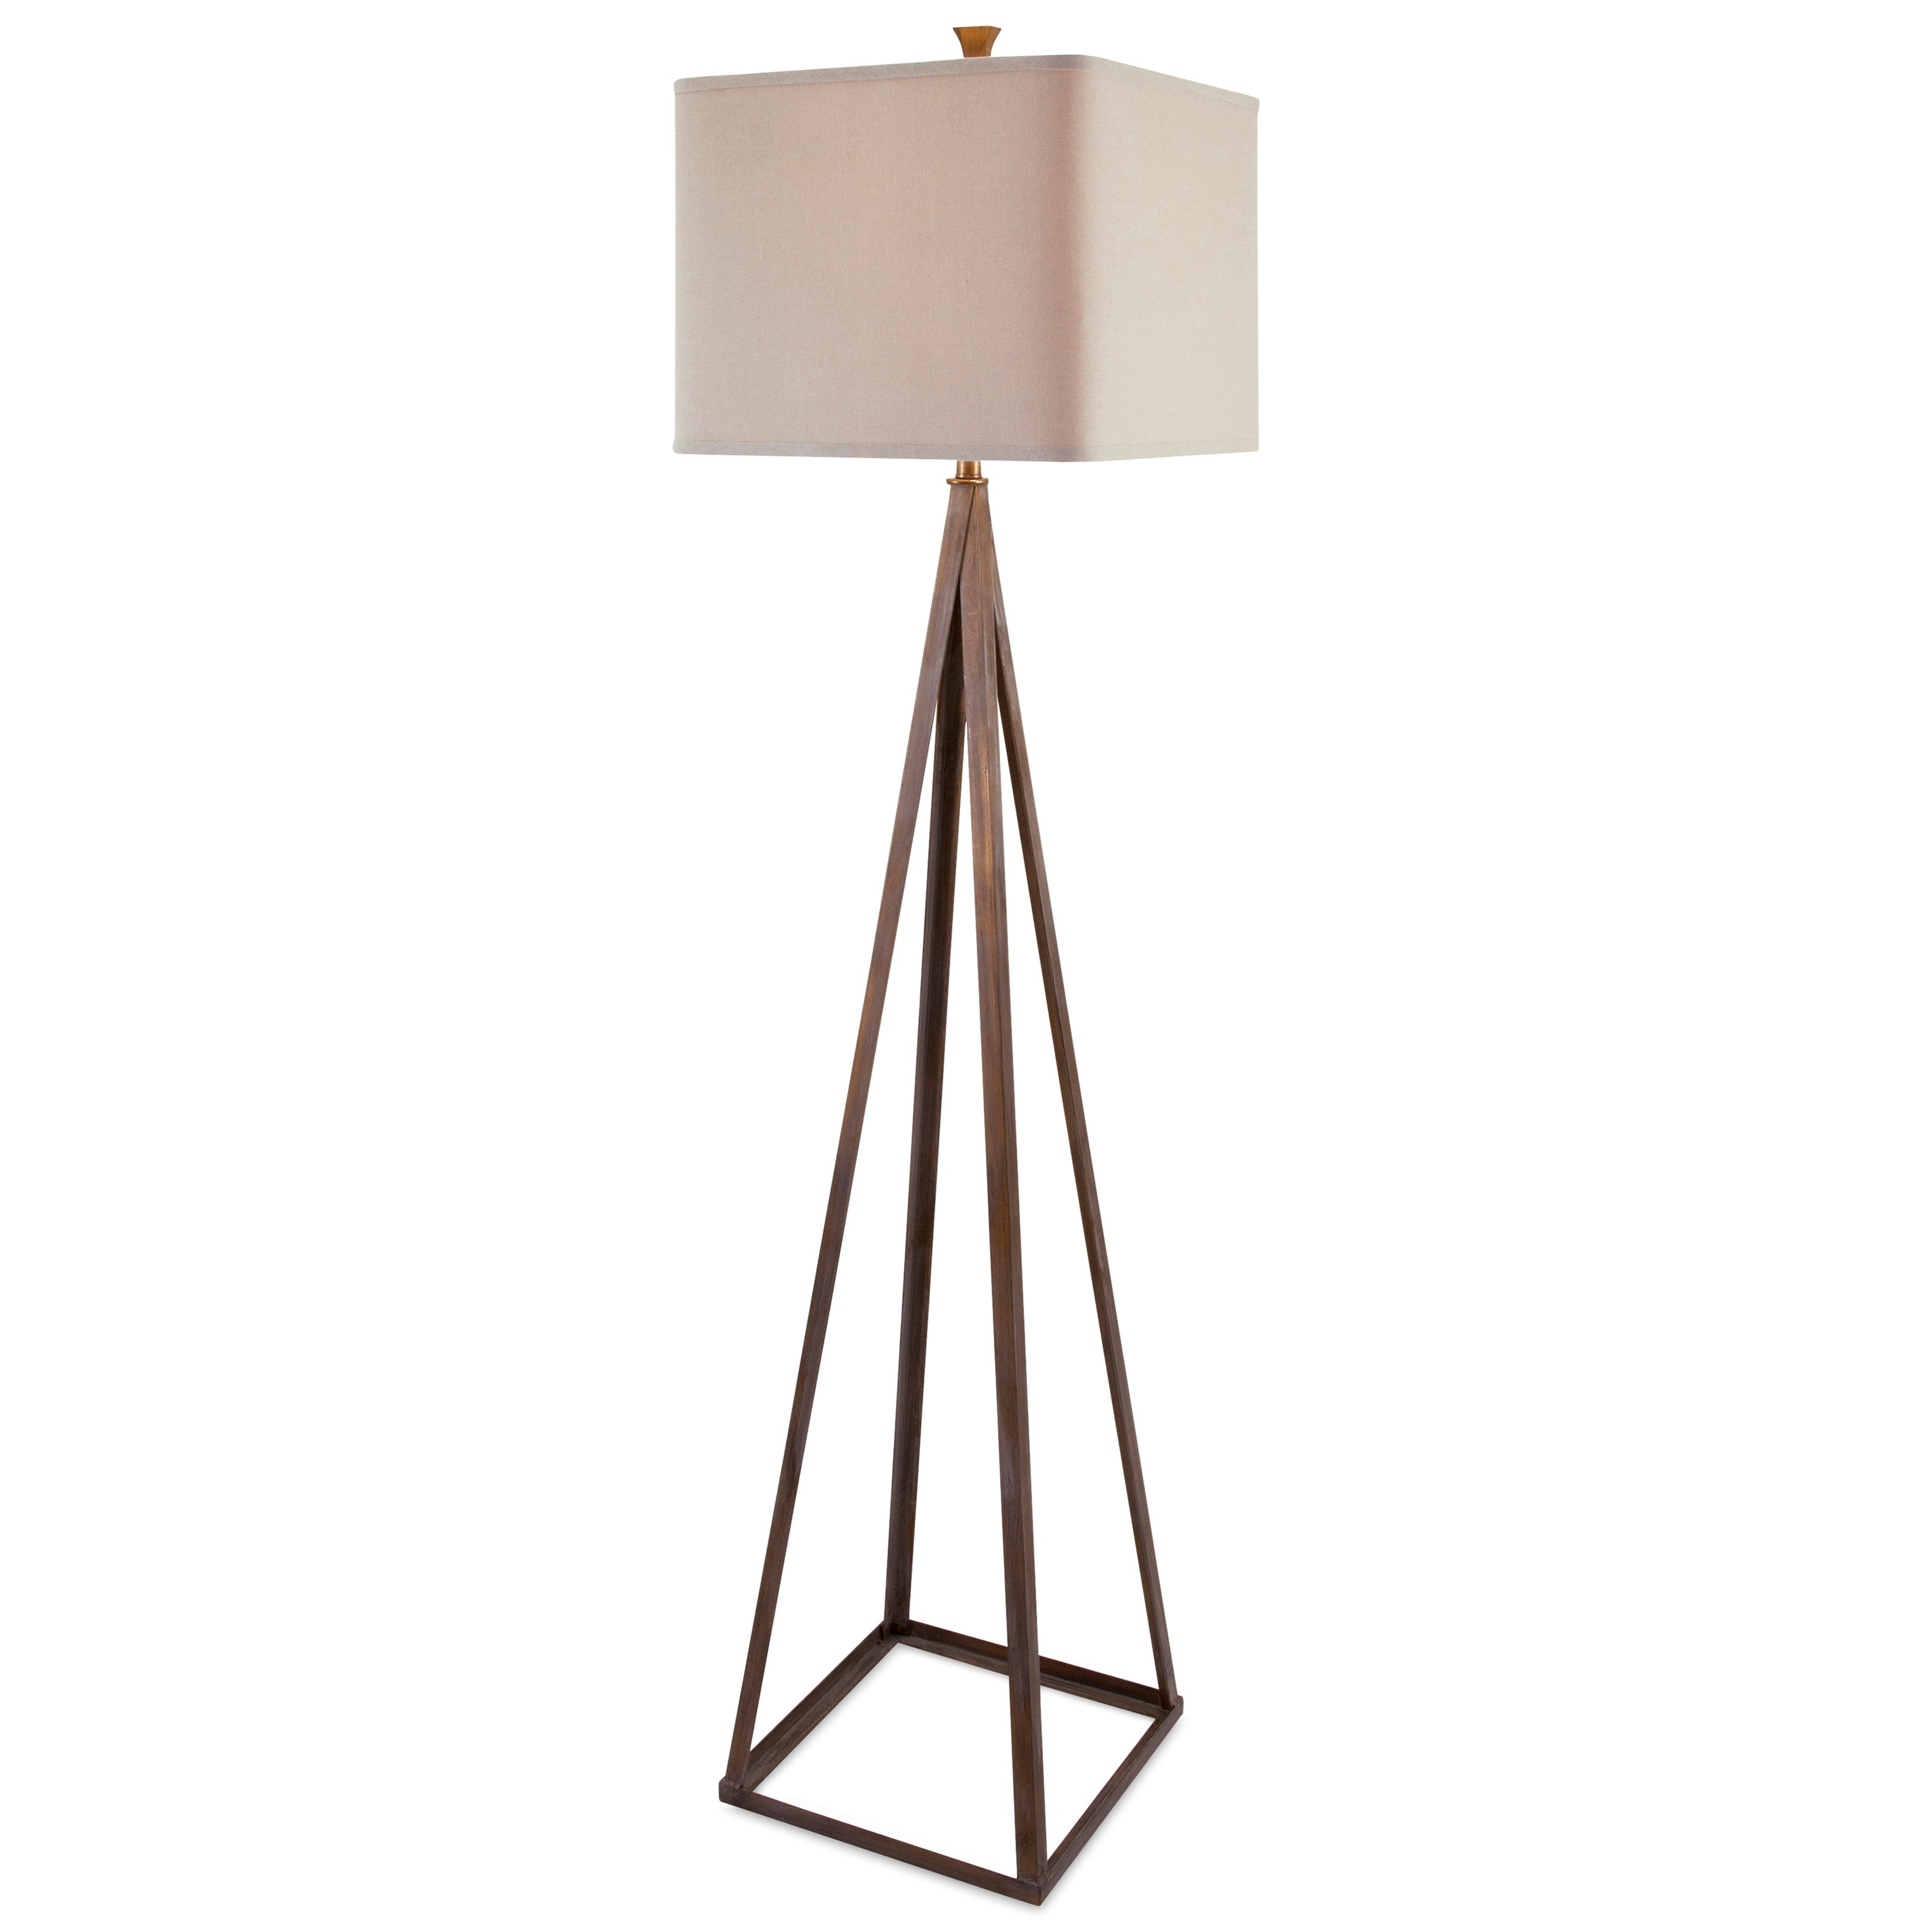 Becky Fletcher Austin Floor Lamp by IMAX Worldwide Home at Alison Craig Home Furnishings